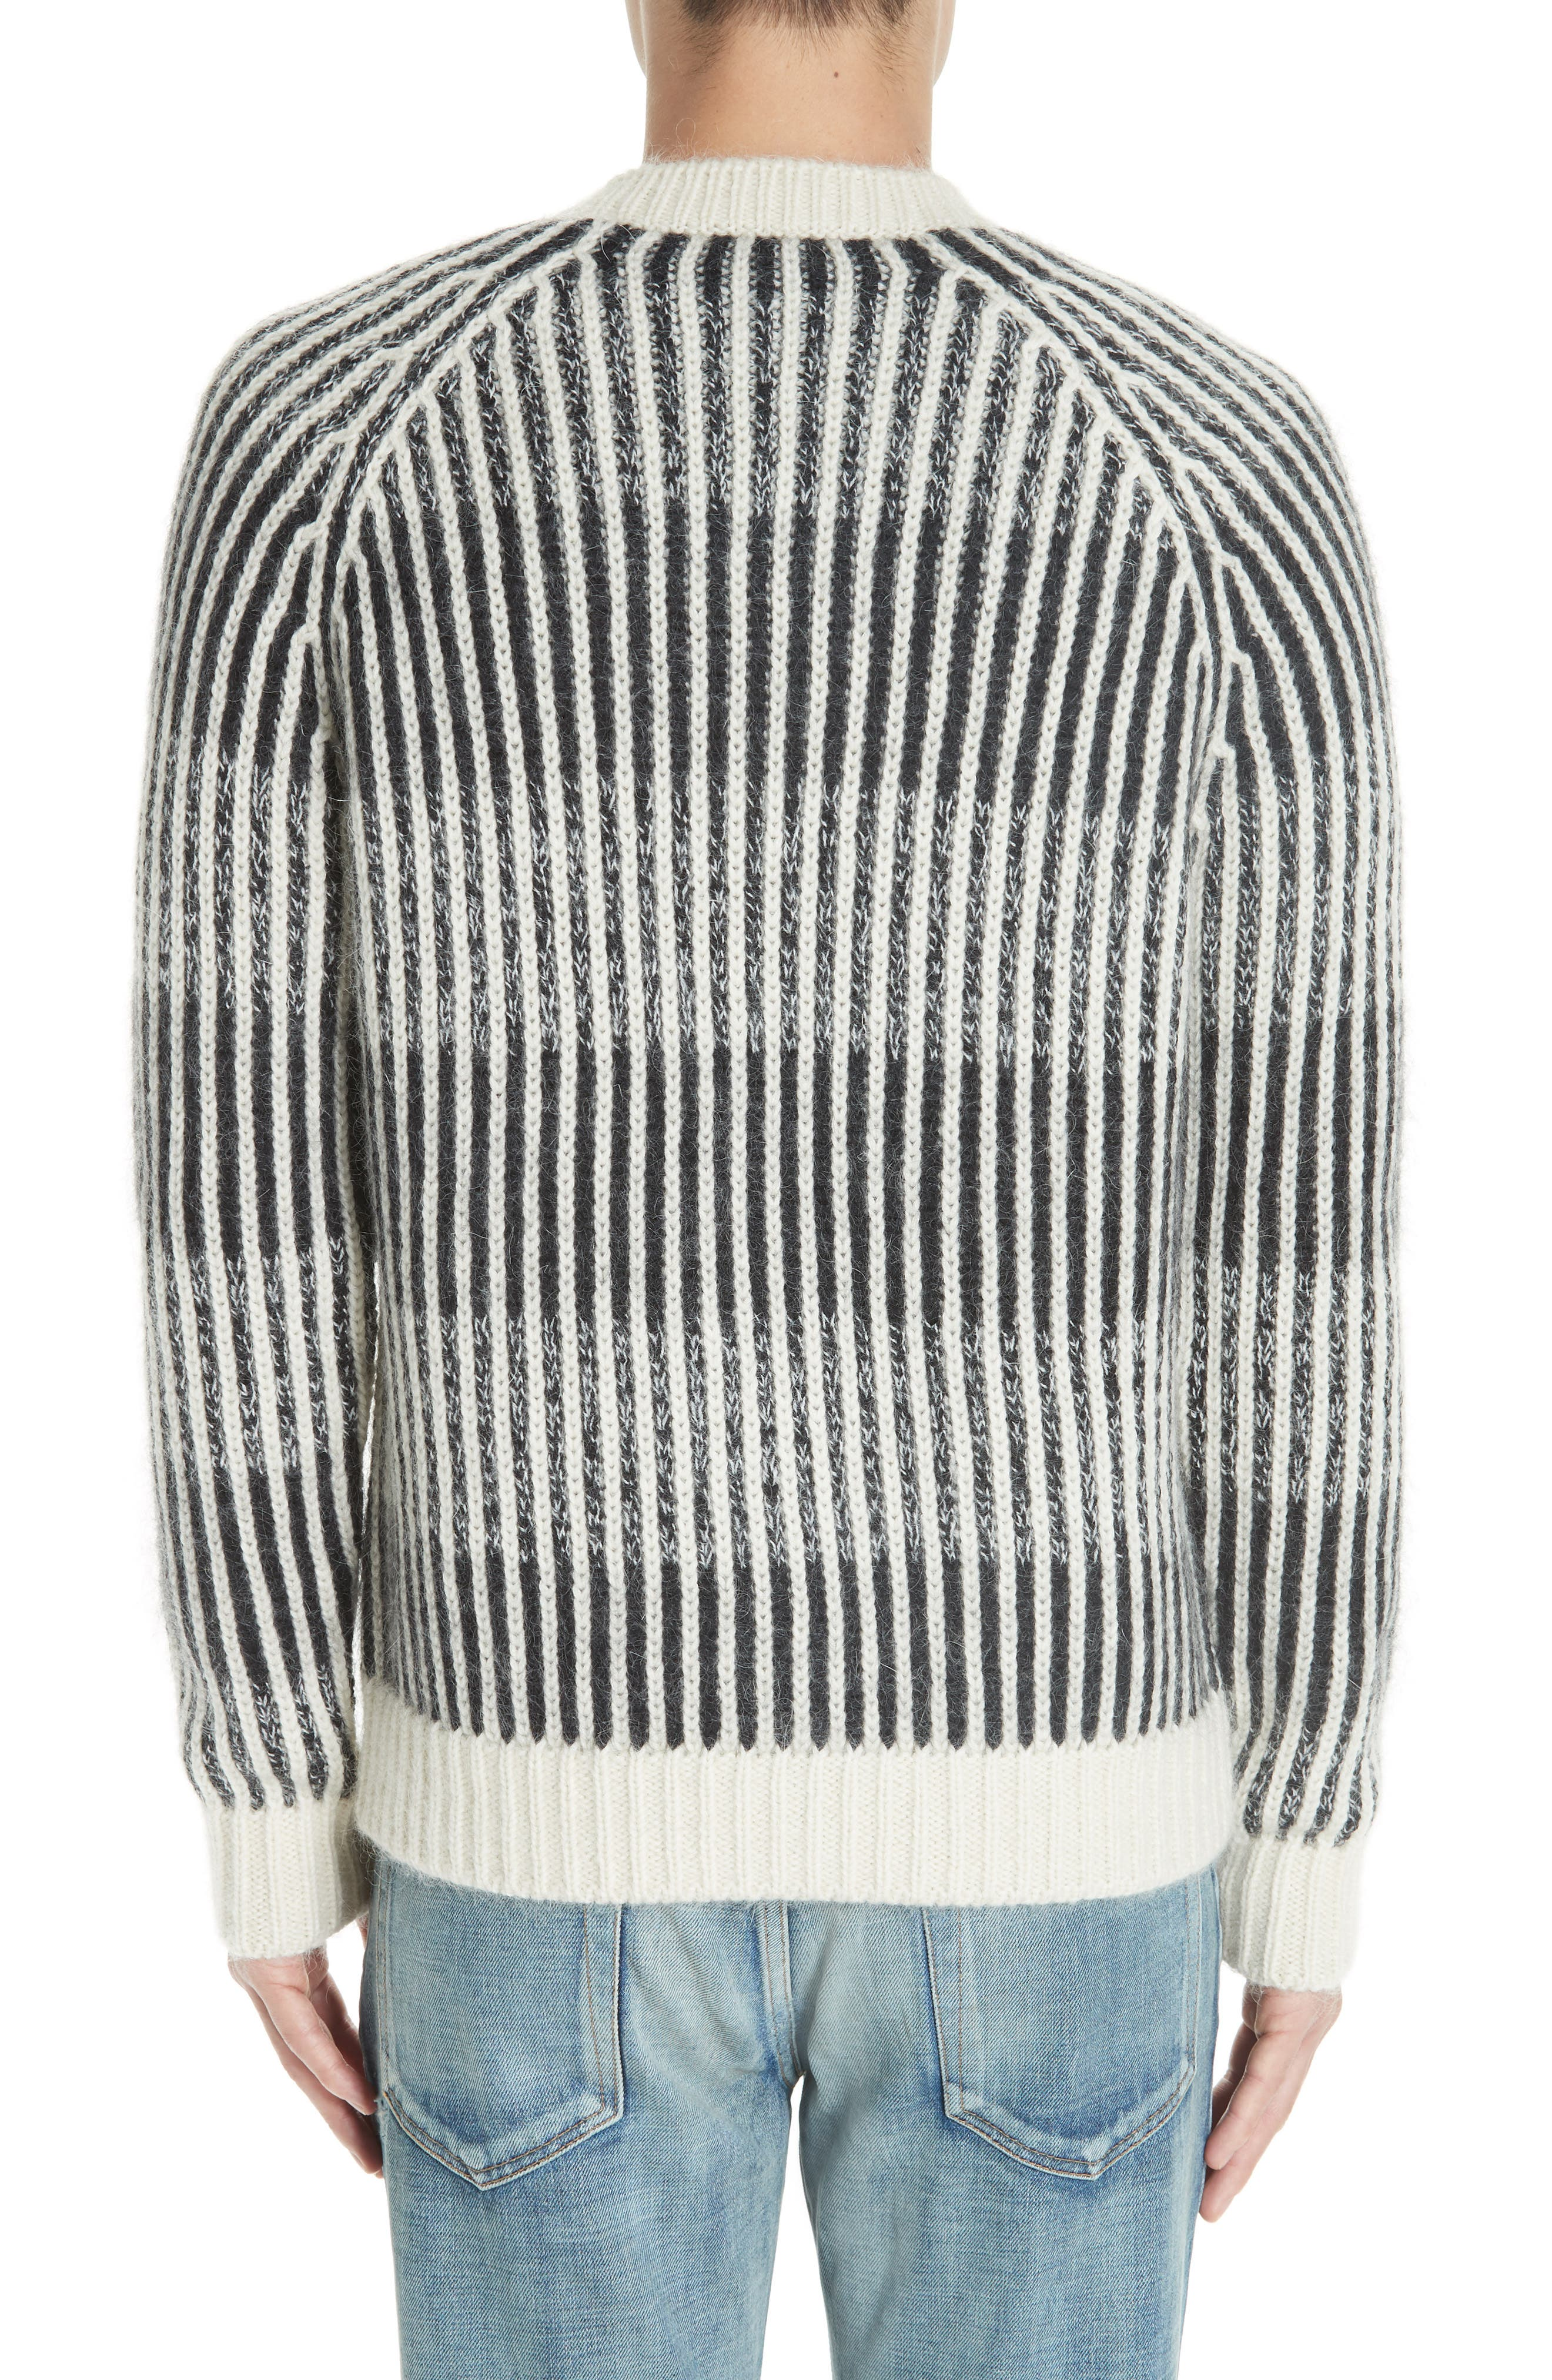 SAINT LAURENT,                             Contrast Rib Wool & Alpaca Blend Sweater,                             Alternate thumbnail 2, color,                             134